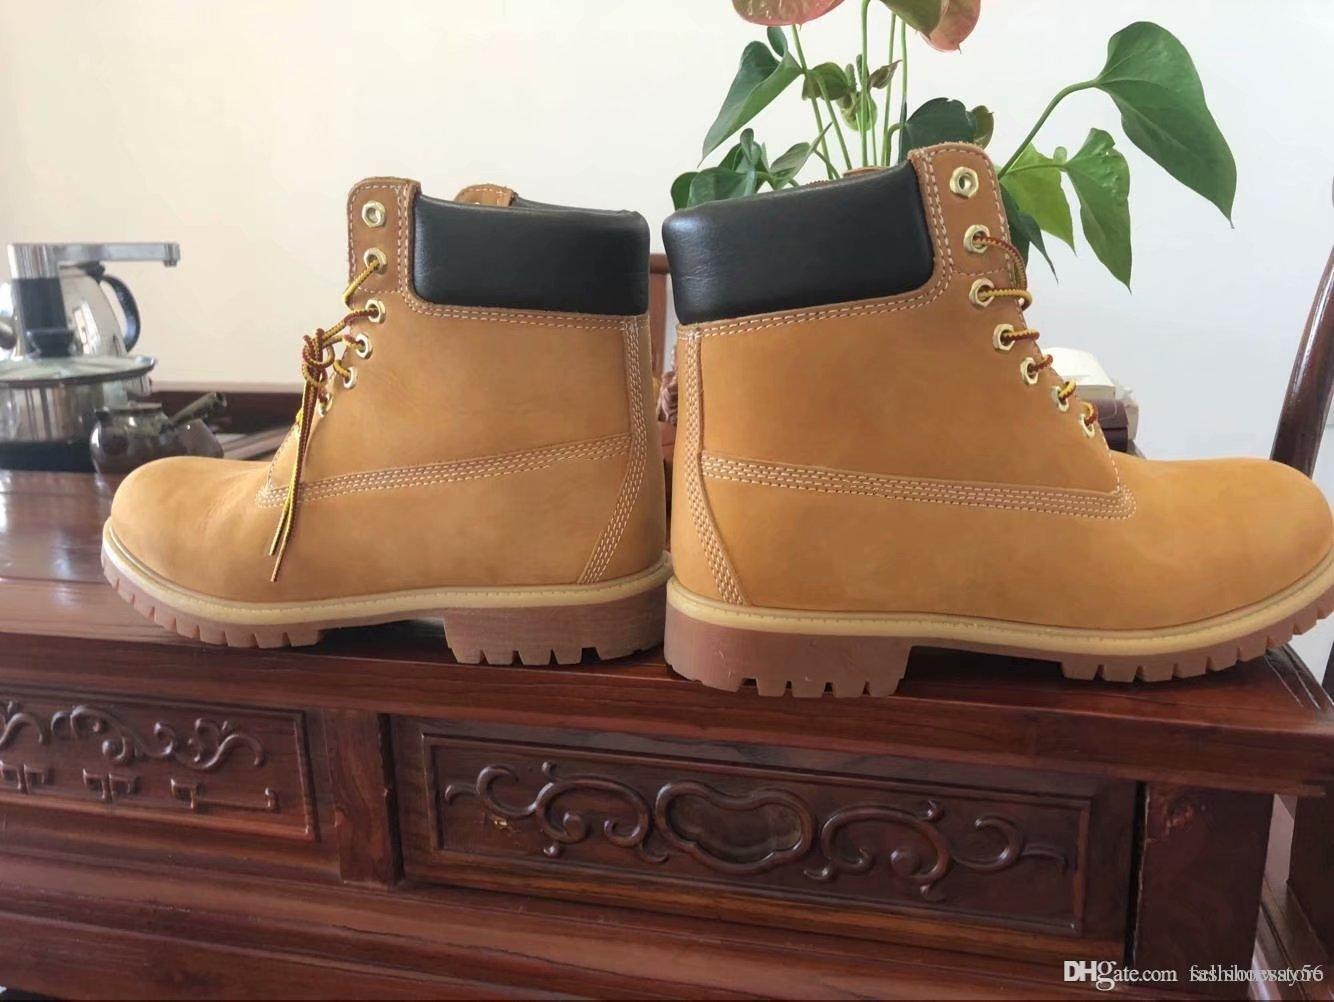 2020 Outlet 6 Inch Boots Man Premium